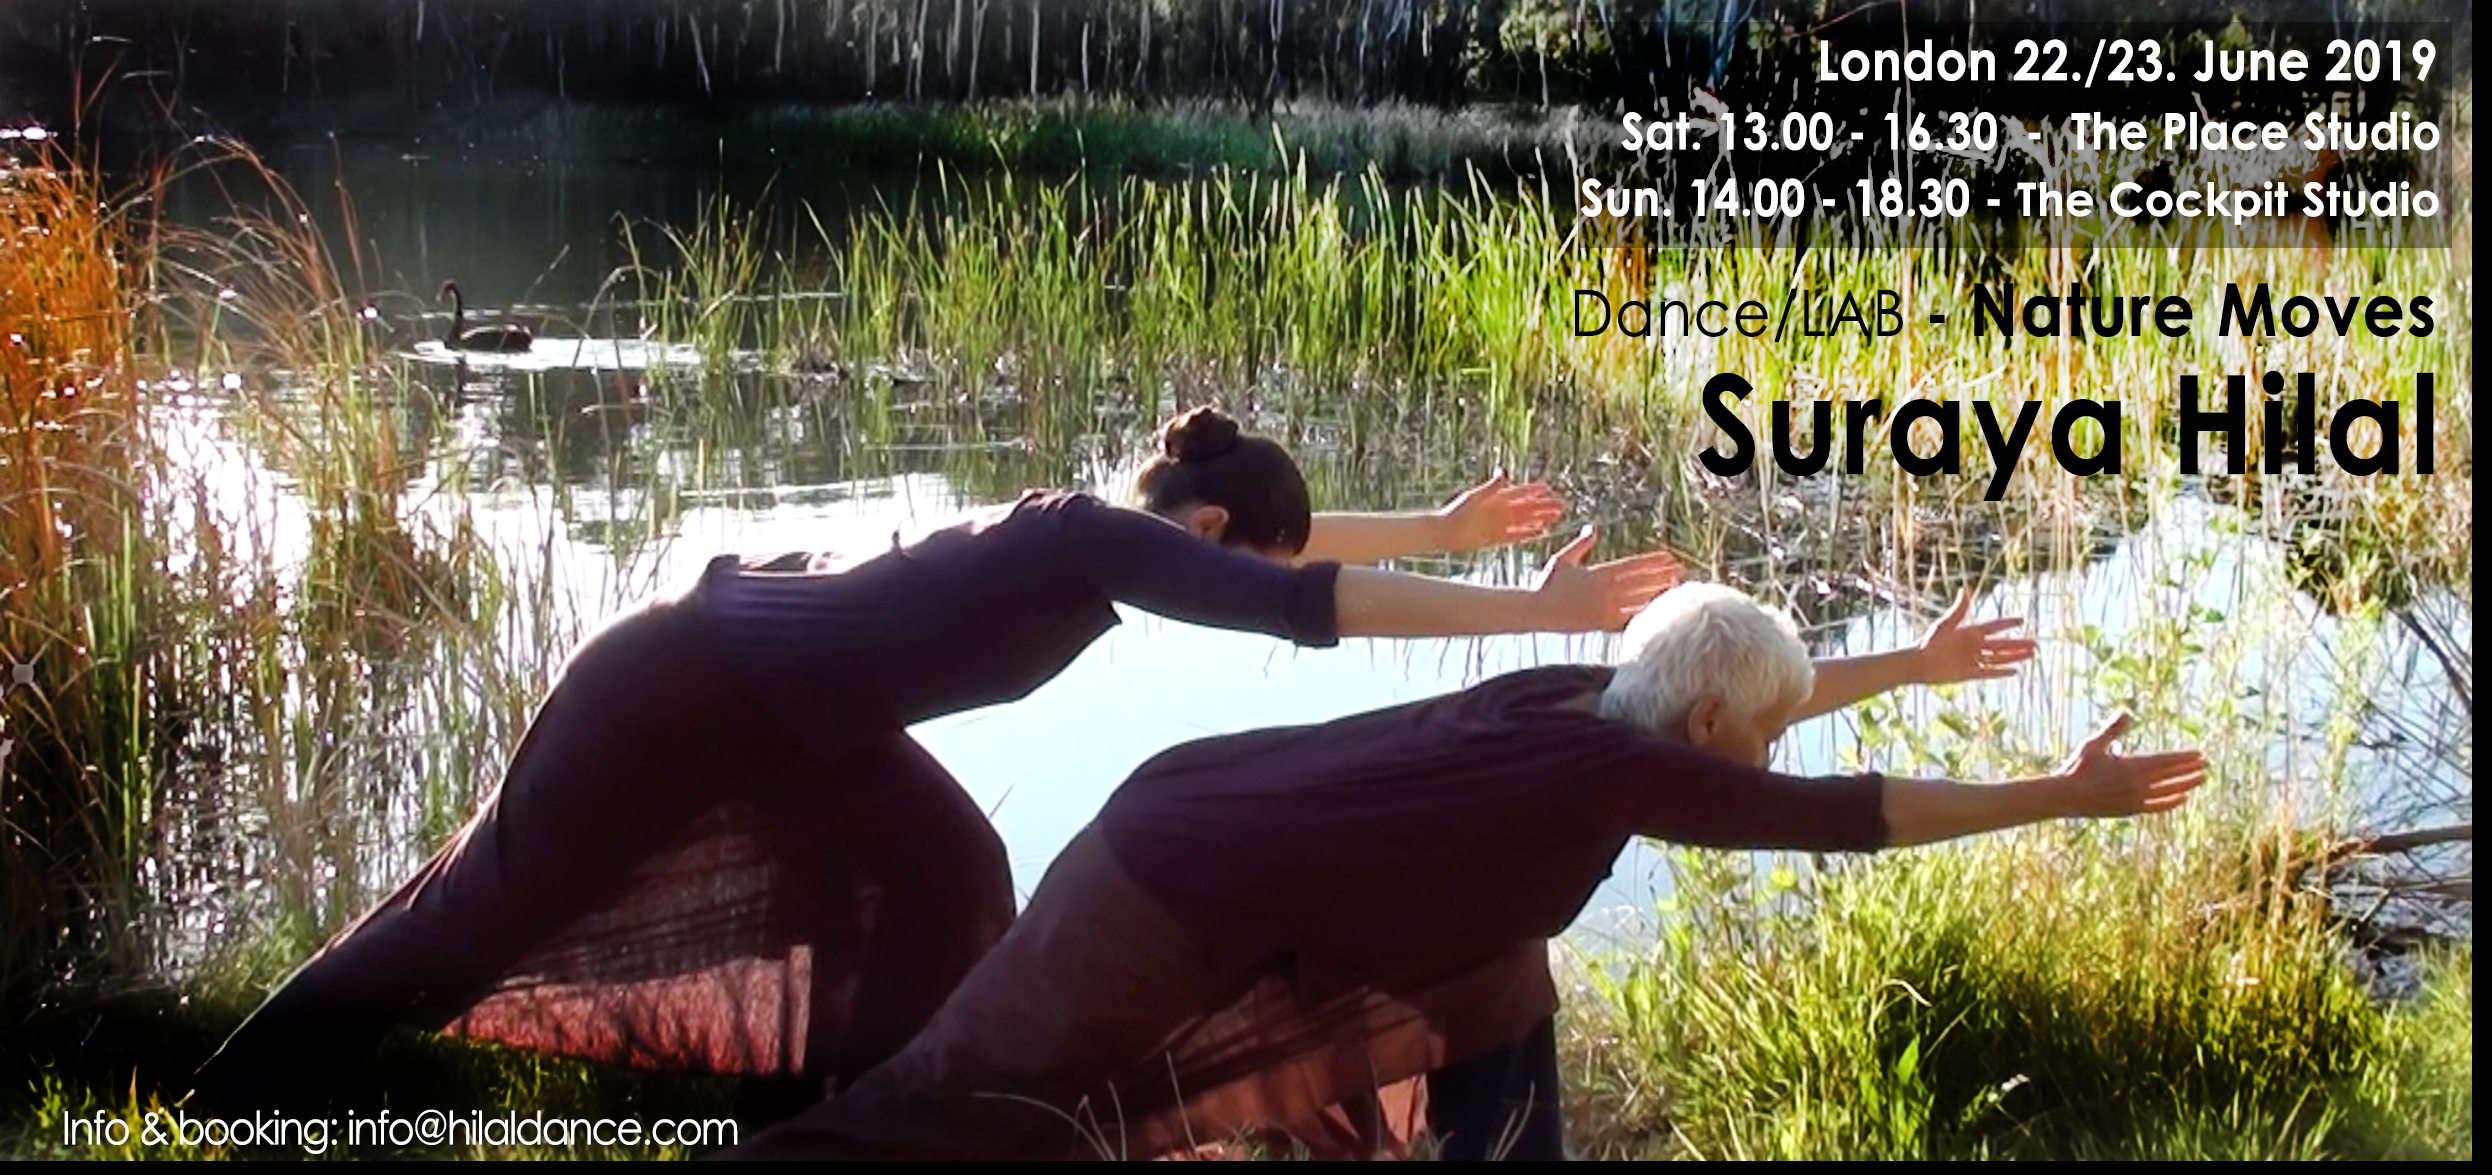 Dance/LAB – Nature Moves, Suraya Hilal